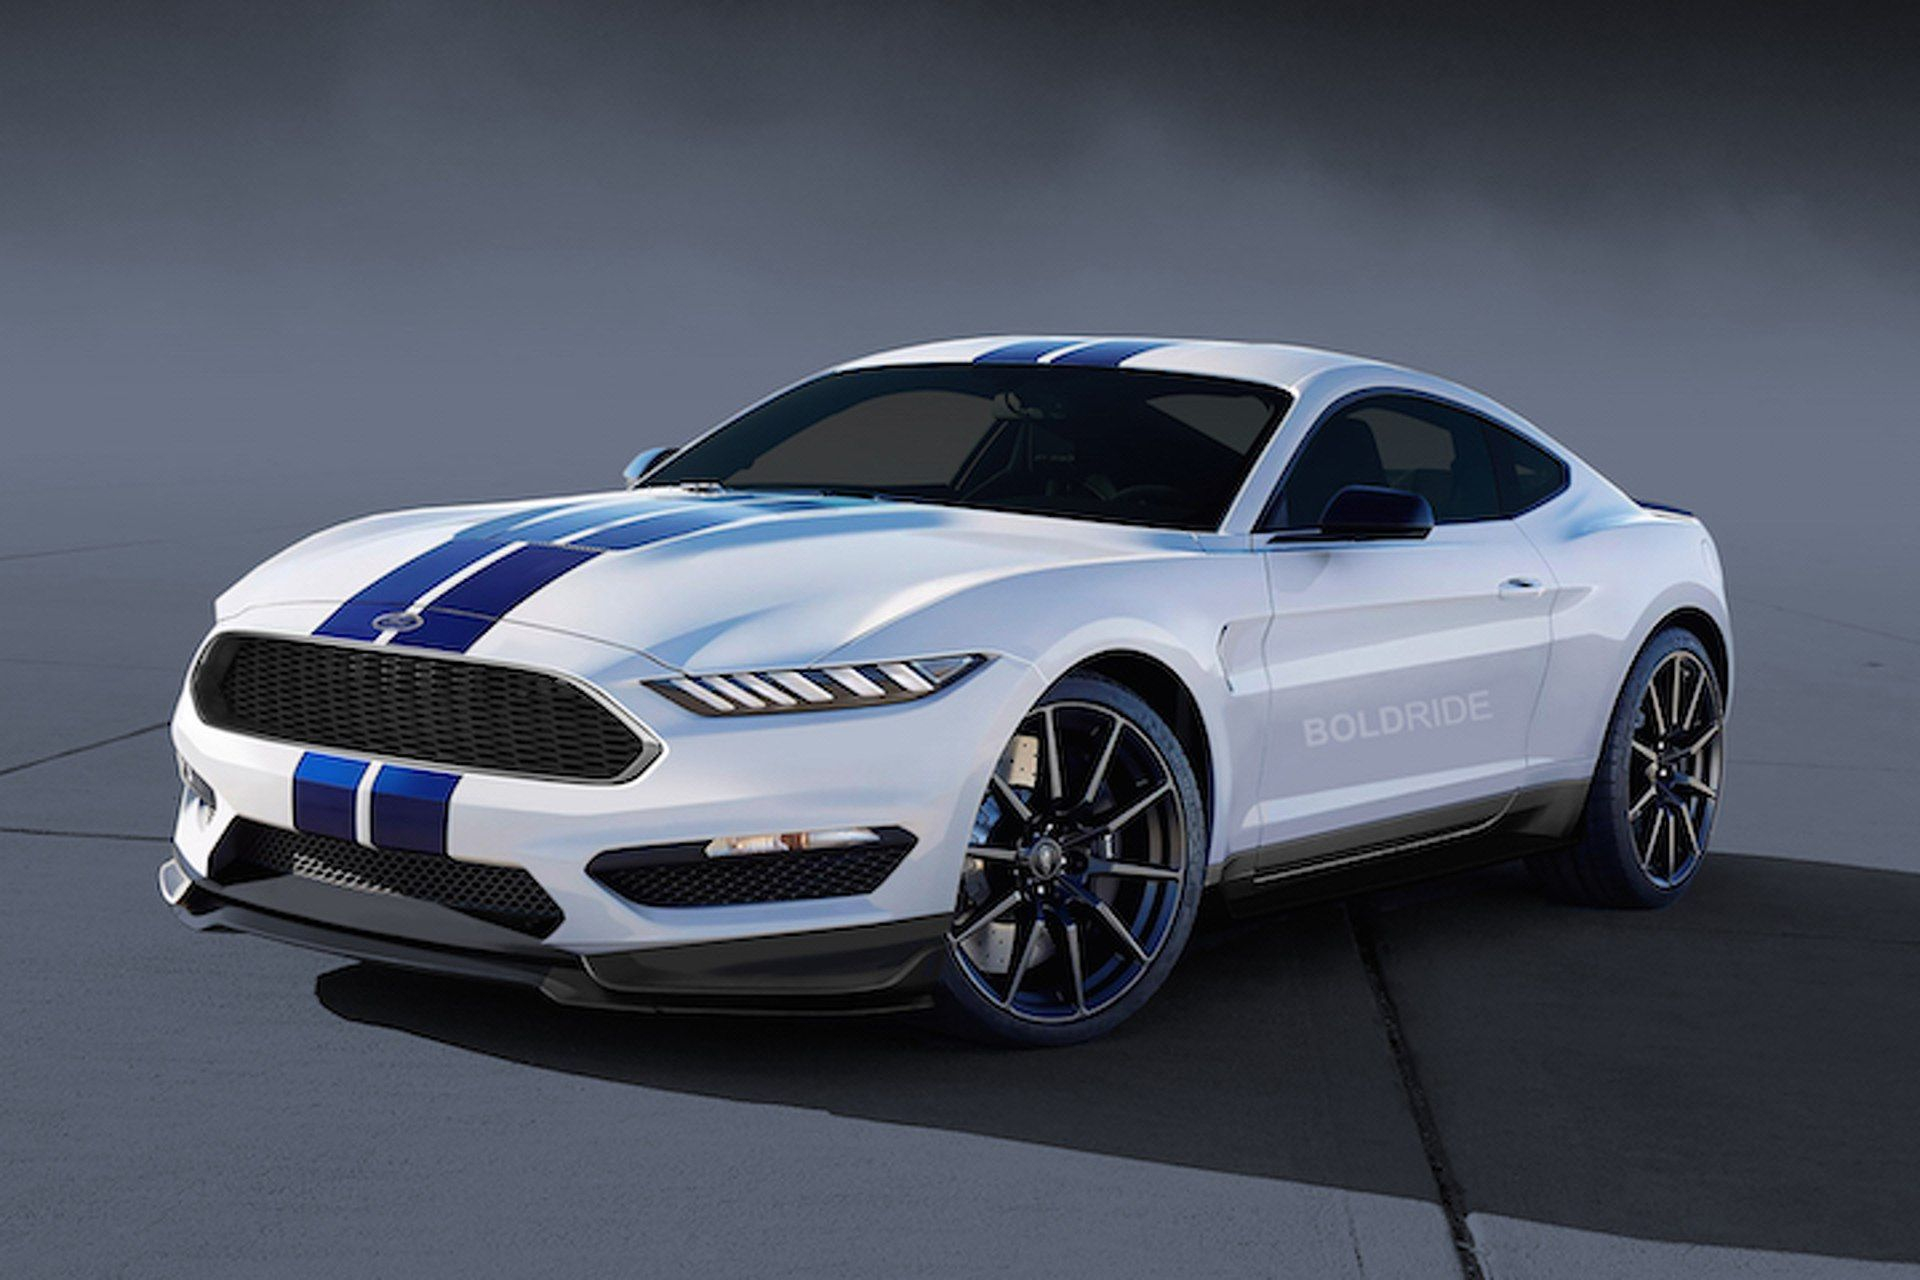 49 The Best 2020 Mustang Mach New Model and Performance